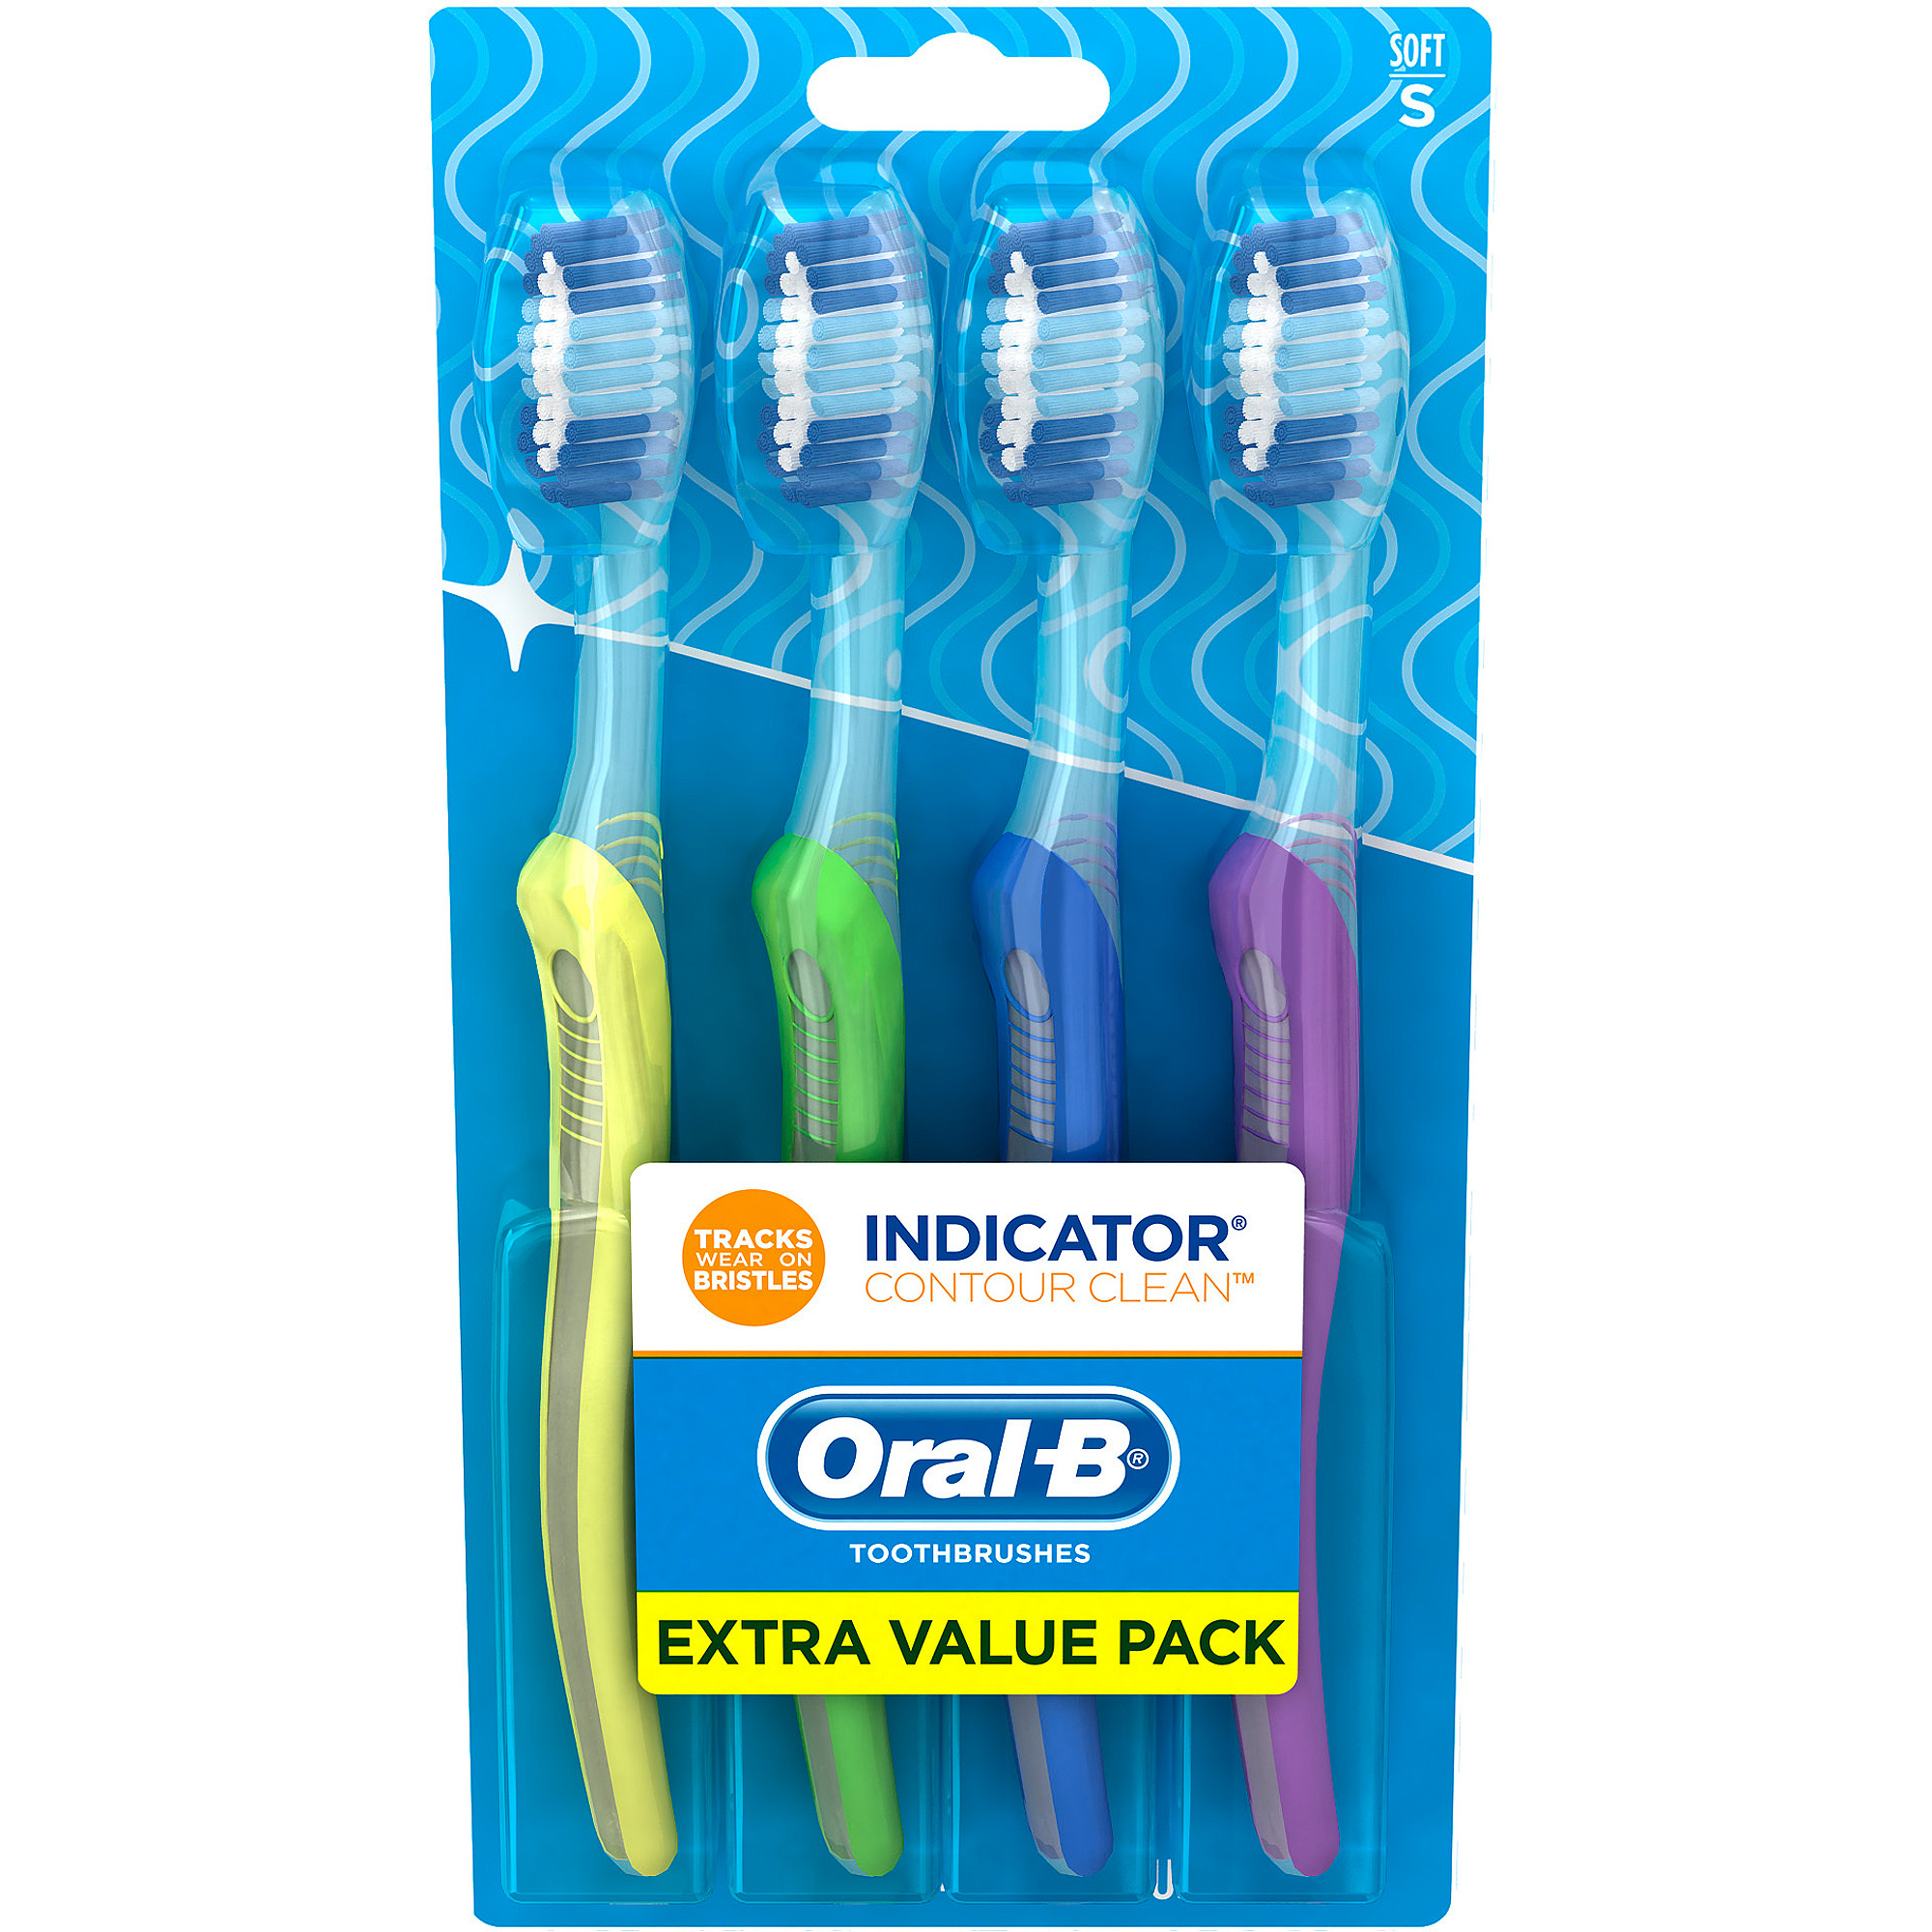 Oral-B Indicator Soft Bristle Toothbrush, 4 count